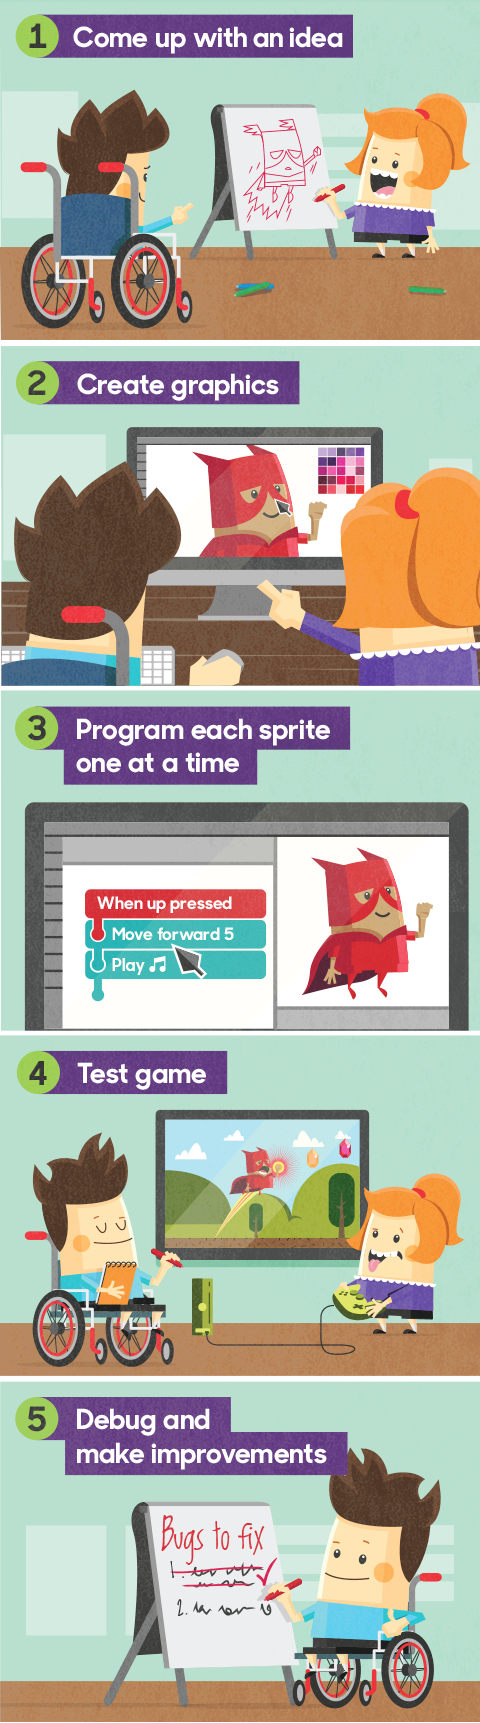 Illustration showing how making a computer game can be 'decomposed' into five steps. Come up with an idea, create graphics, program each sprite, test game, debug and make improvements.